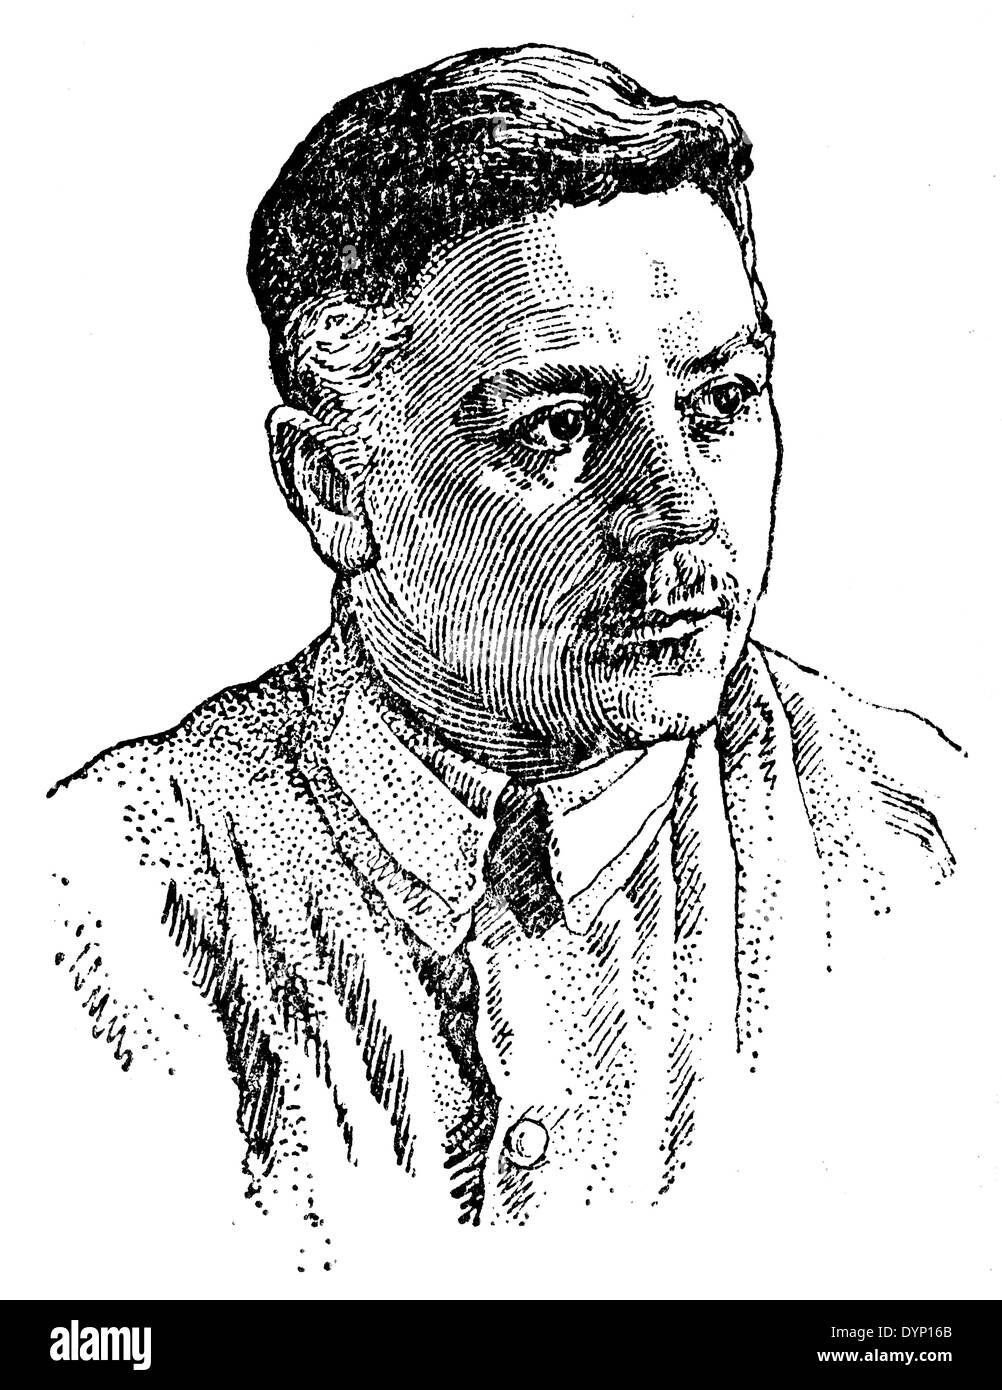 Kliment Voroshilov (1881-1969), Marshal of the Soviet Union, politician, illustration from Soviet encyclopedia, Stock Photo